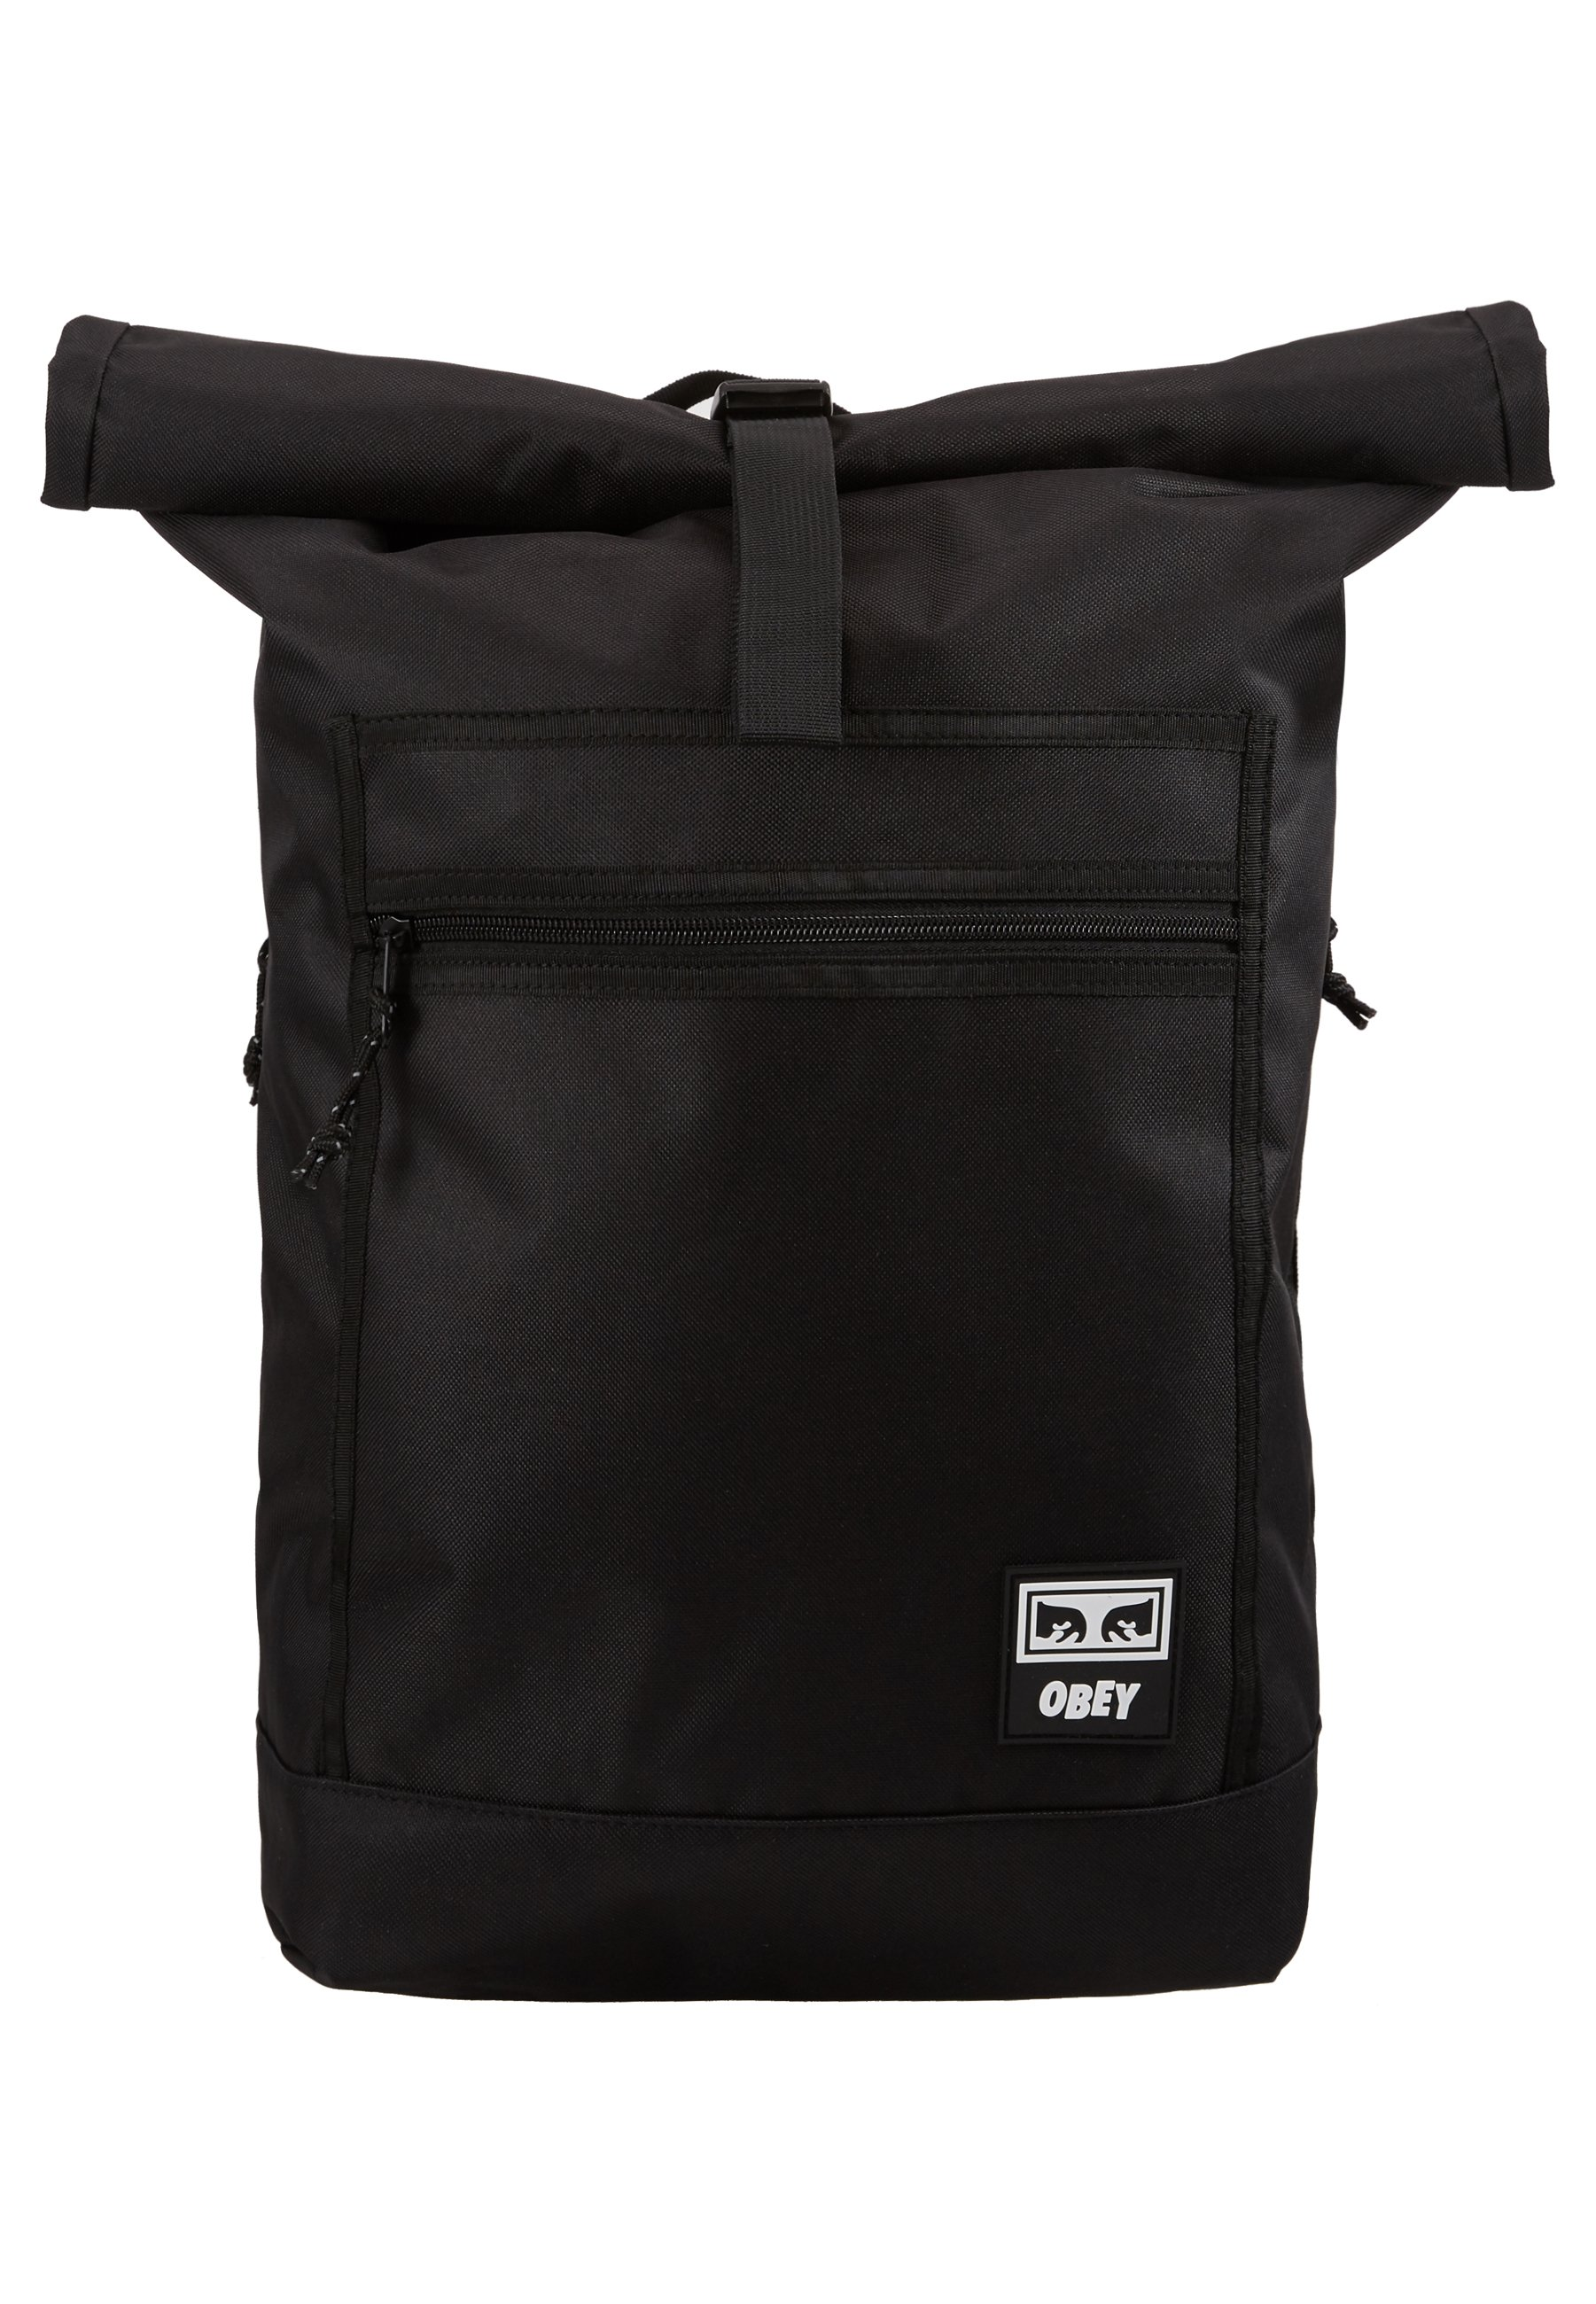 Obey Clothing Conditions Roll Top Bag - Sac À Dos Black